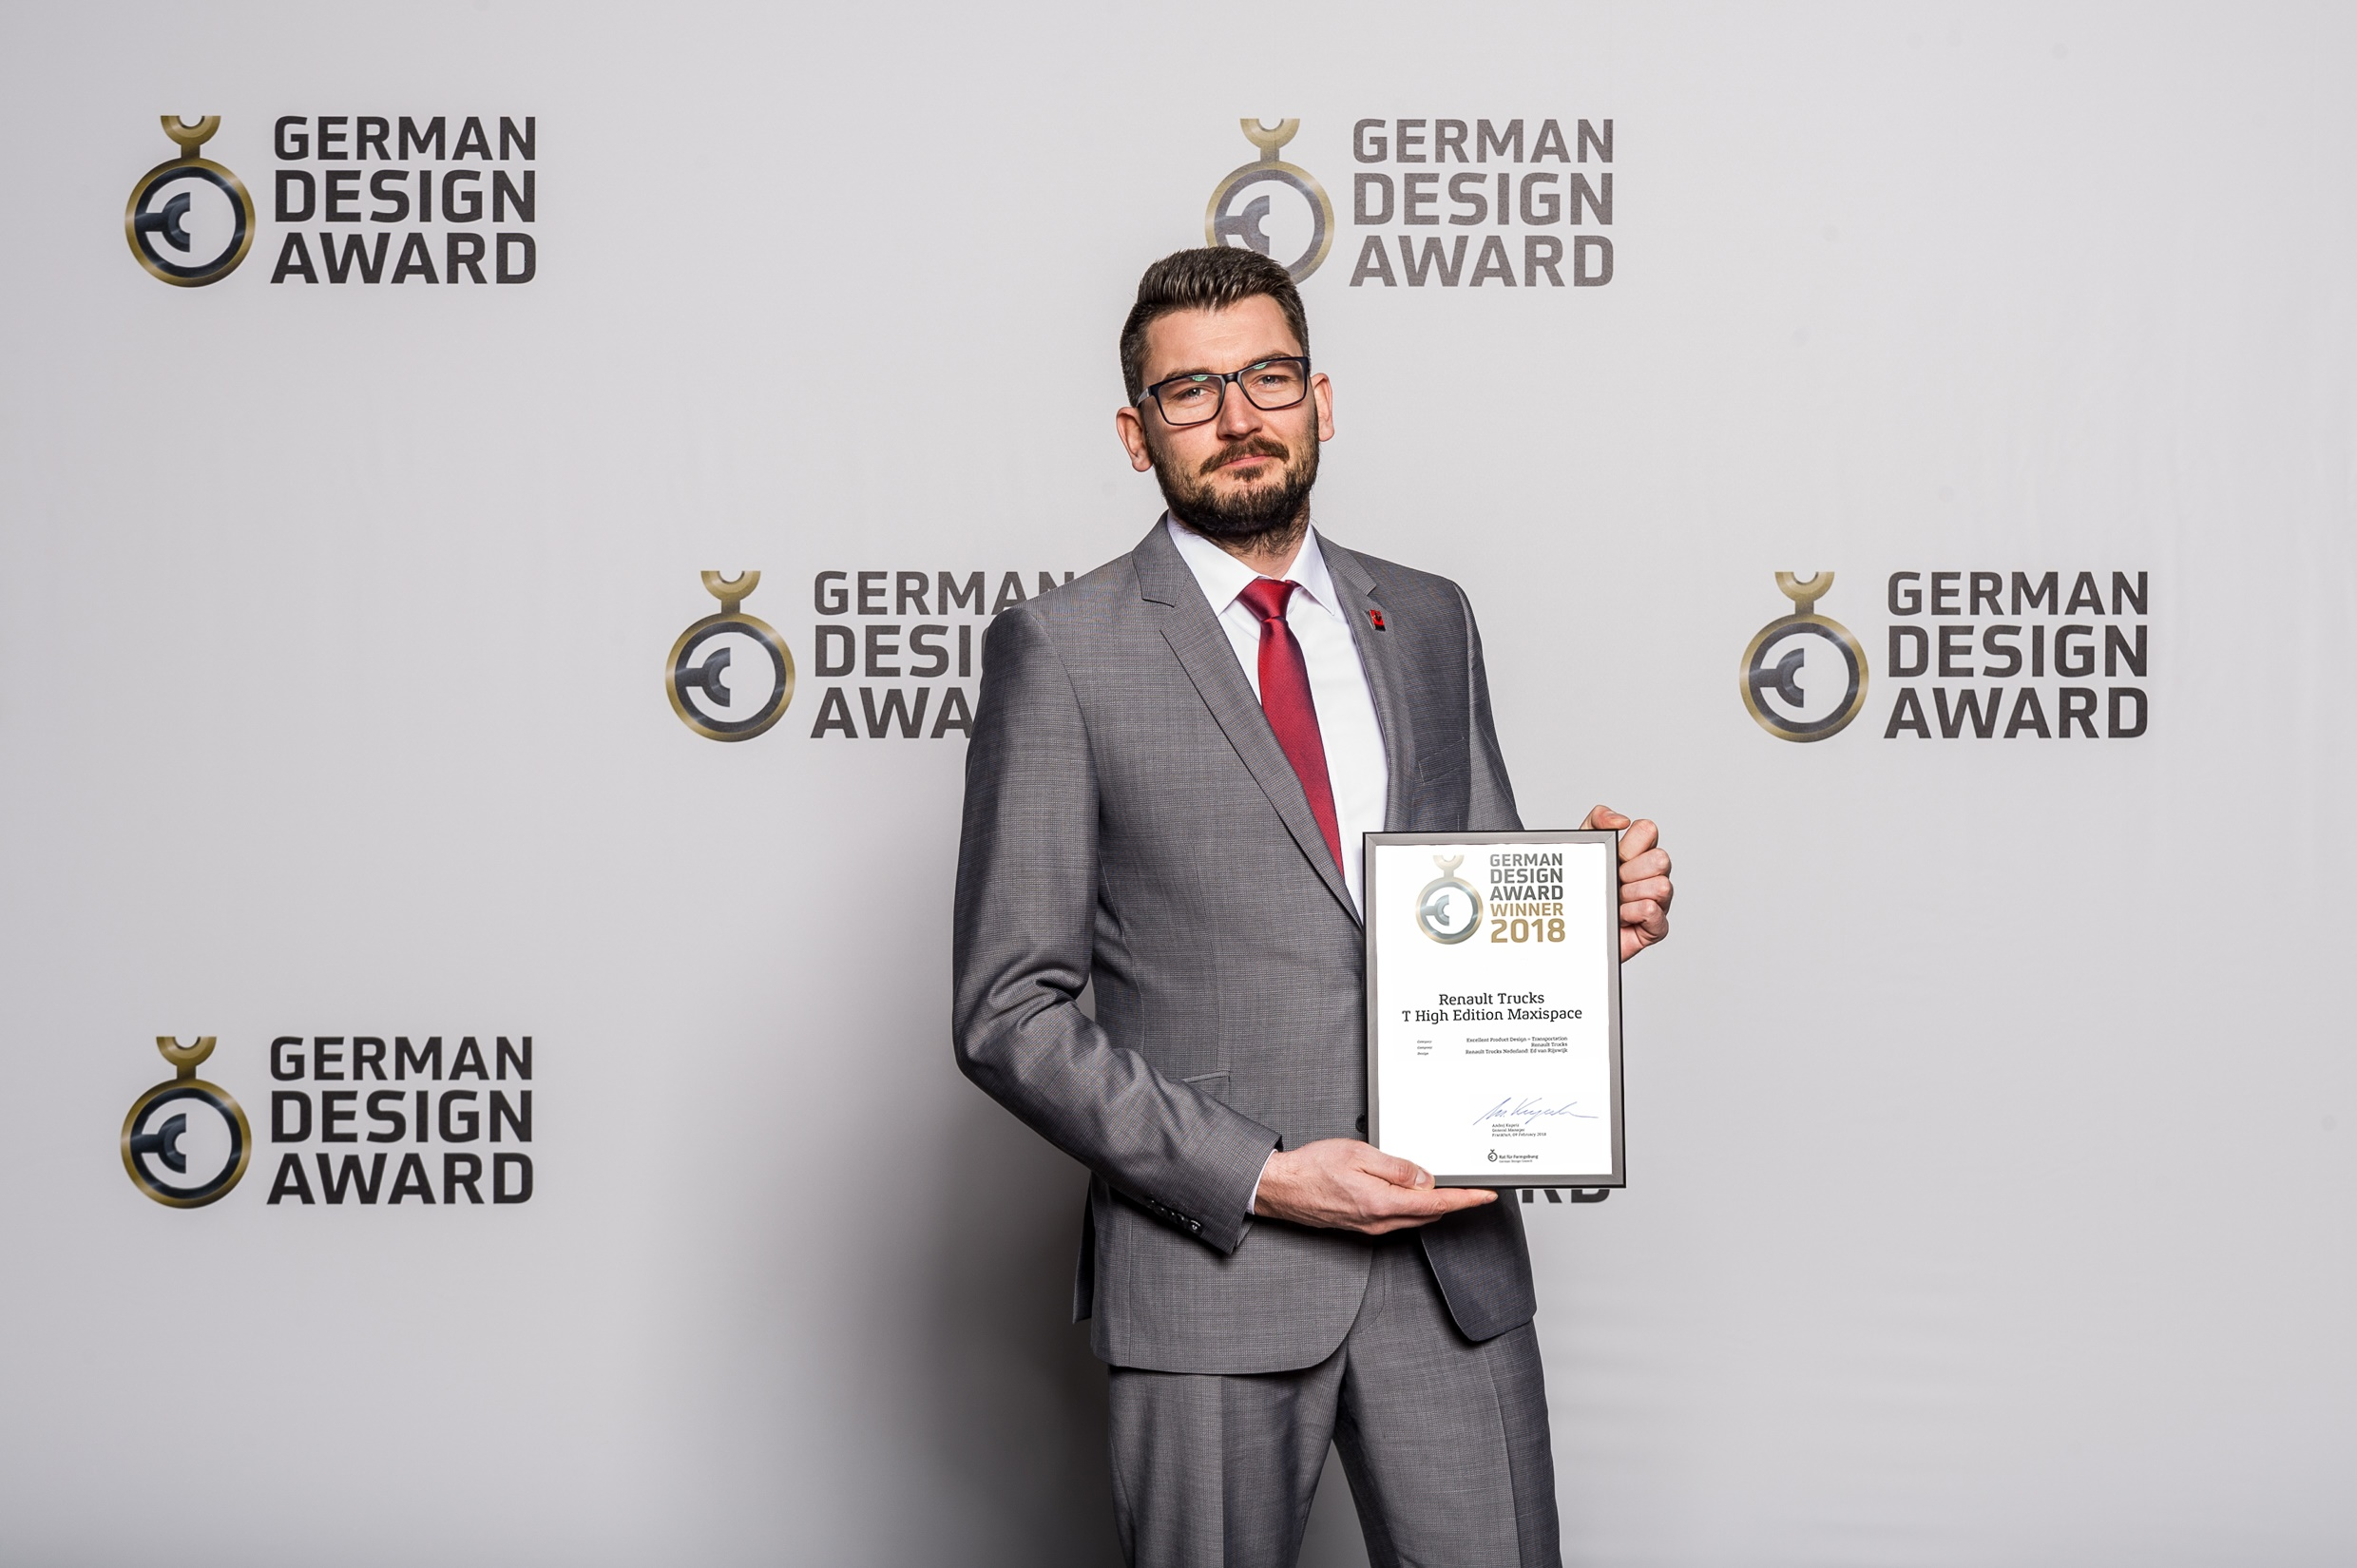 Renault Trucks Receives German Design Award for Renault Truck T High Edition